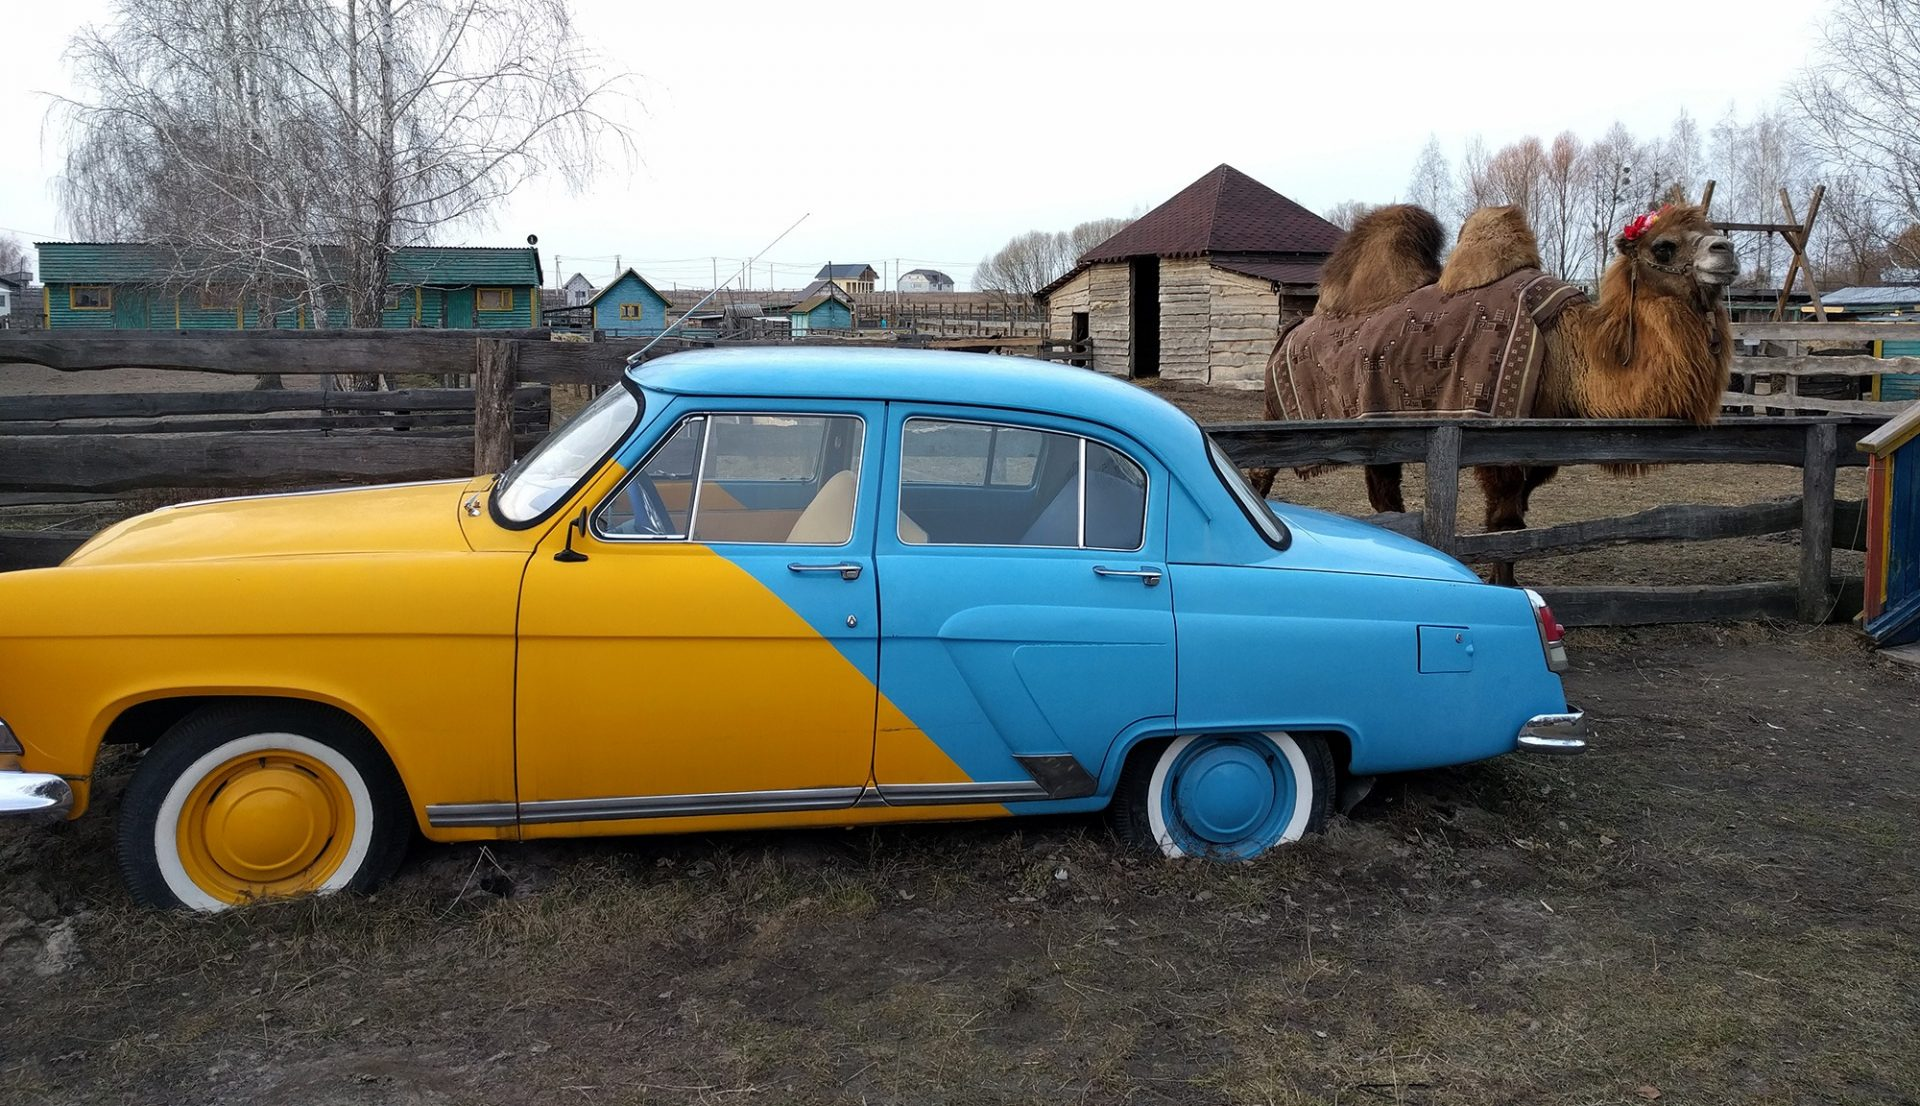 Ukrainian Car and a Camel